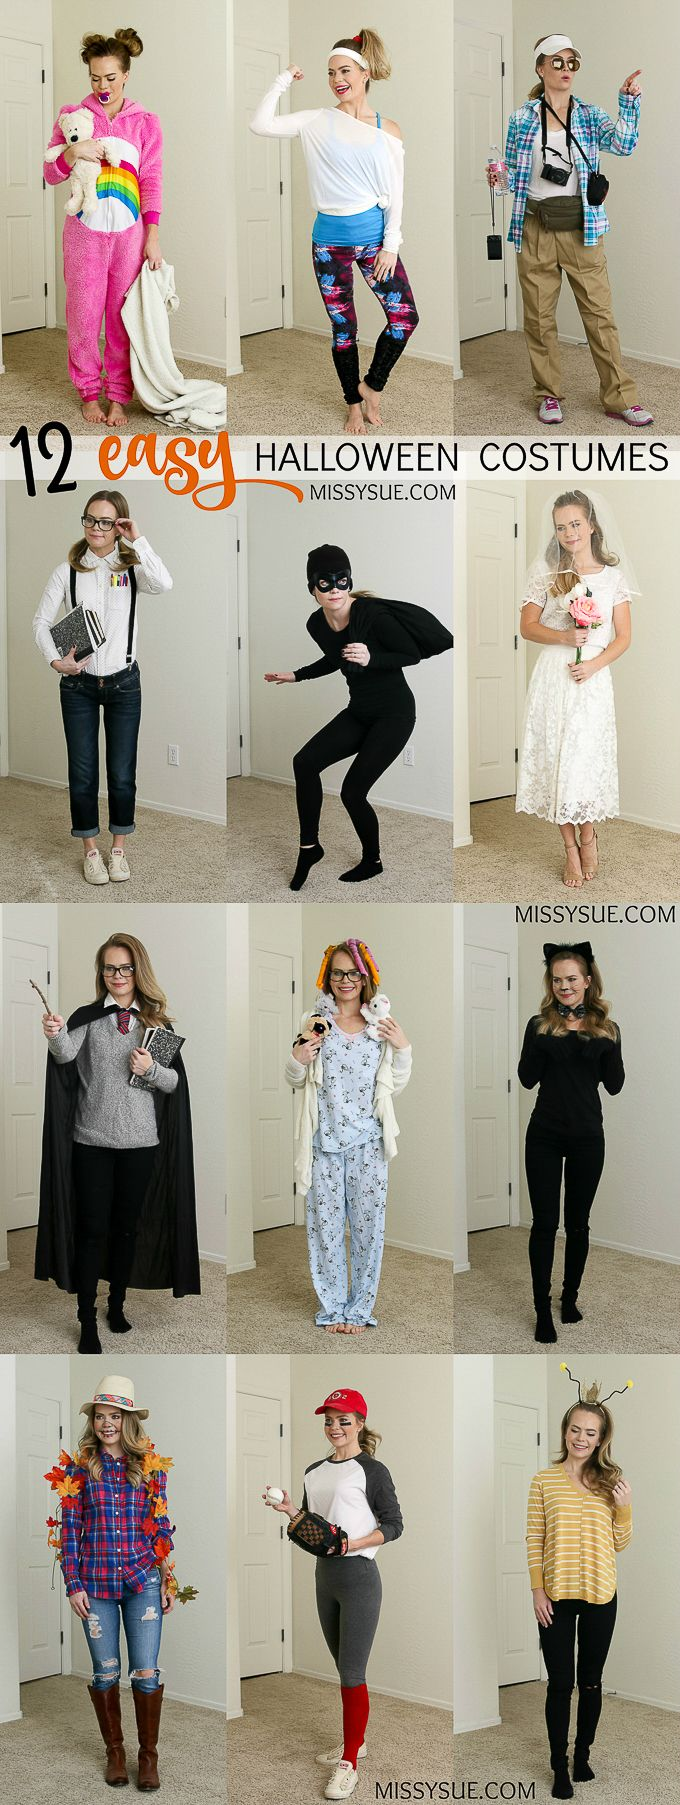 Simple And Cheap Living Room Decoration: 12 Easy Last-Minute Halloween Costumes